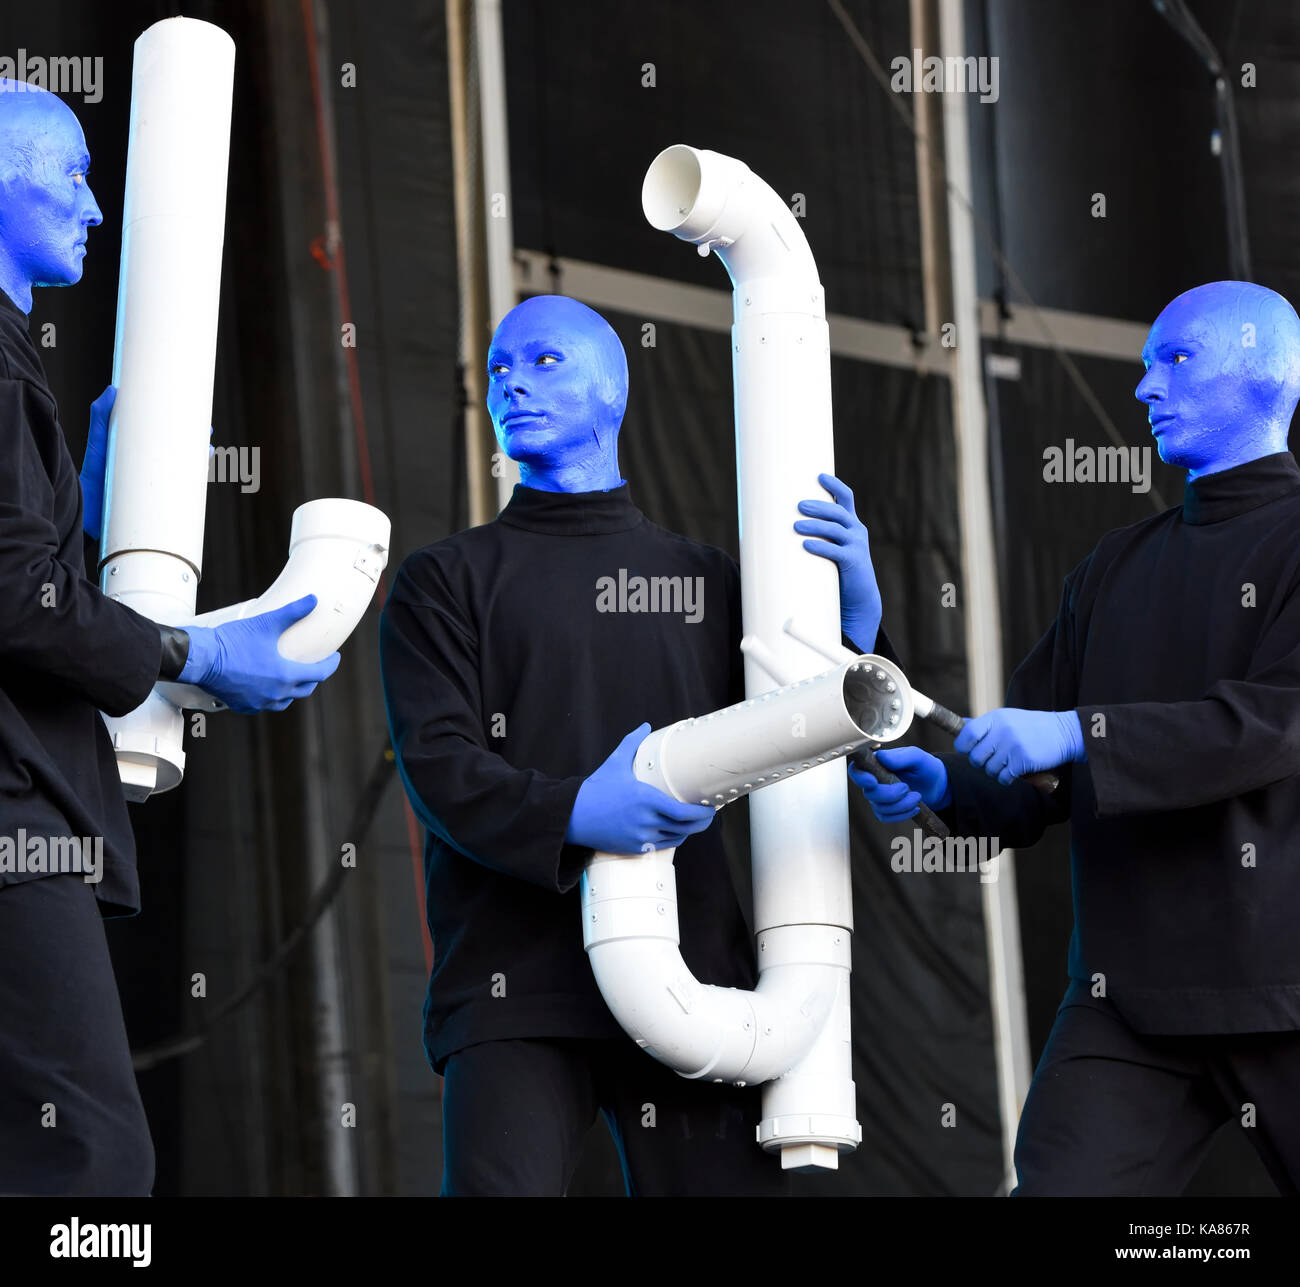 Las Vegas, Nevada - September 24, 2017 - Blue Man Group performing on stage at the Life is Beautiful festival day - Stock Image